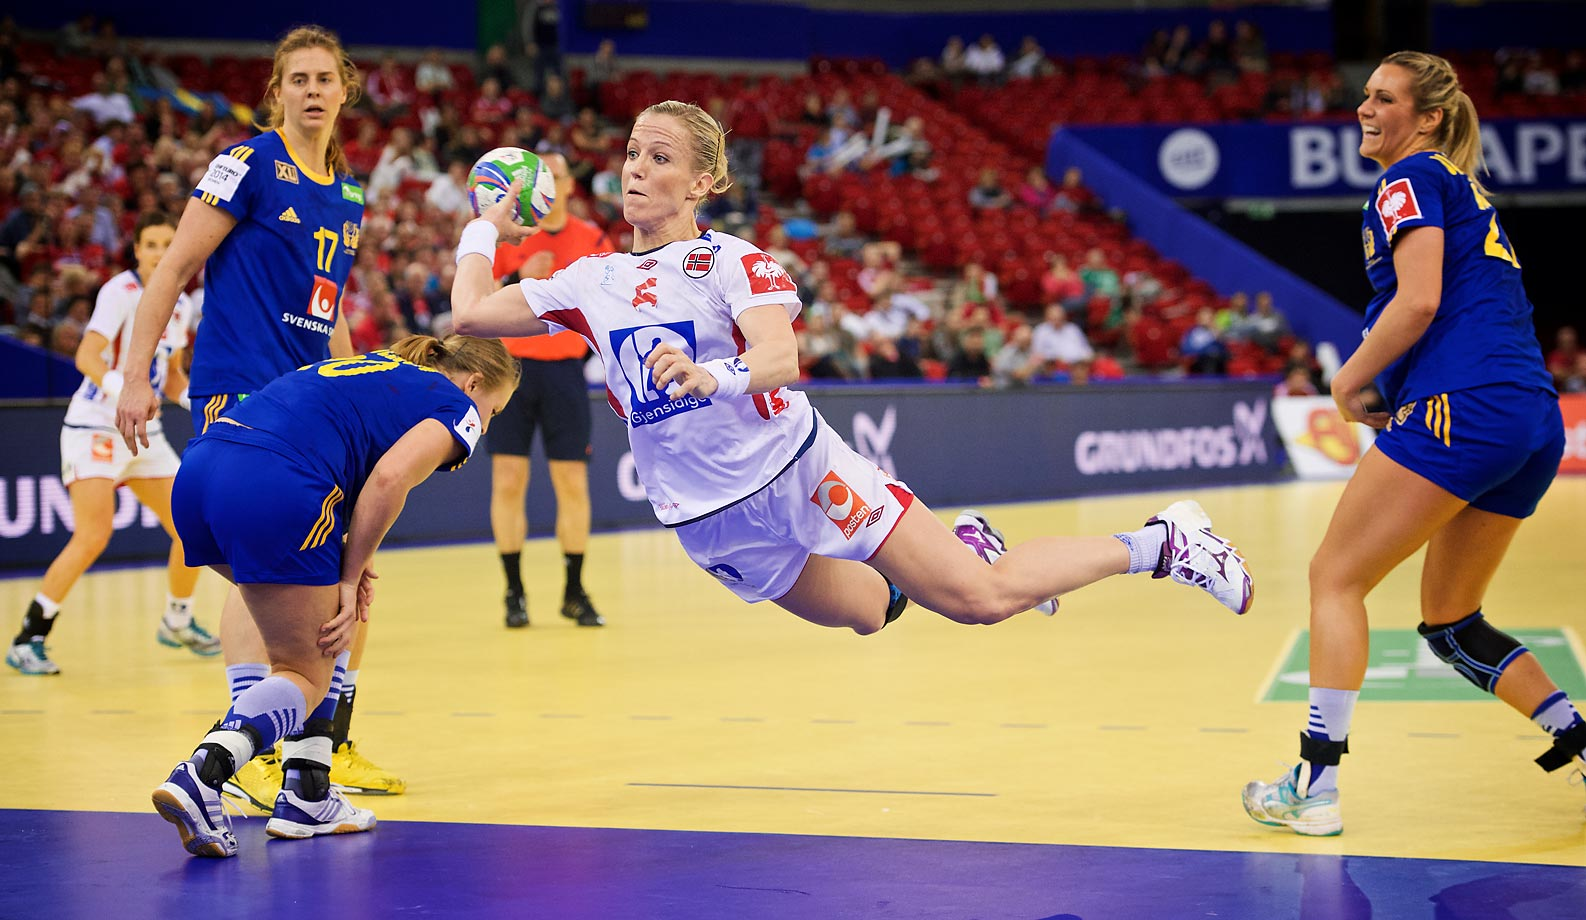 Norway's Heidi Loke  scores during a semi-final game against Sweden.